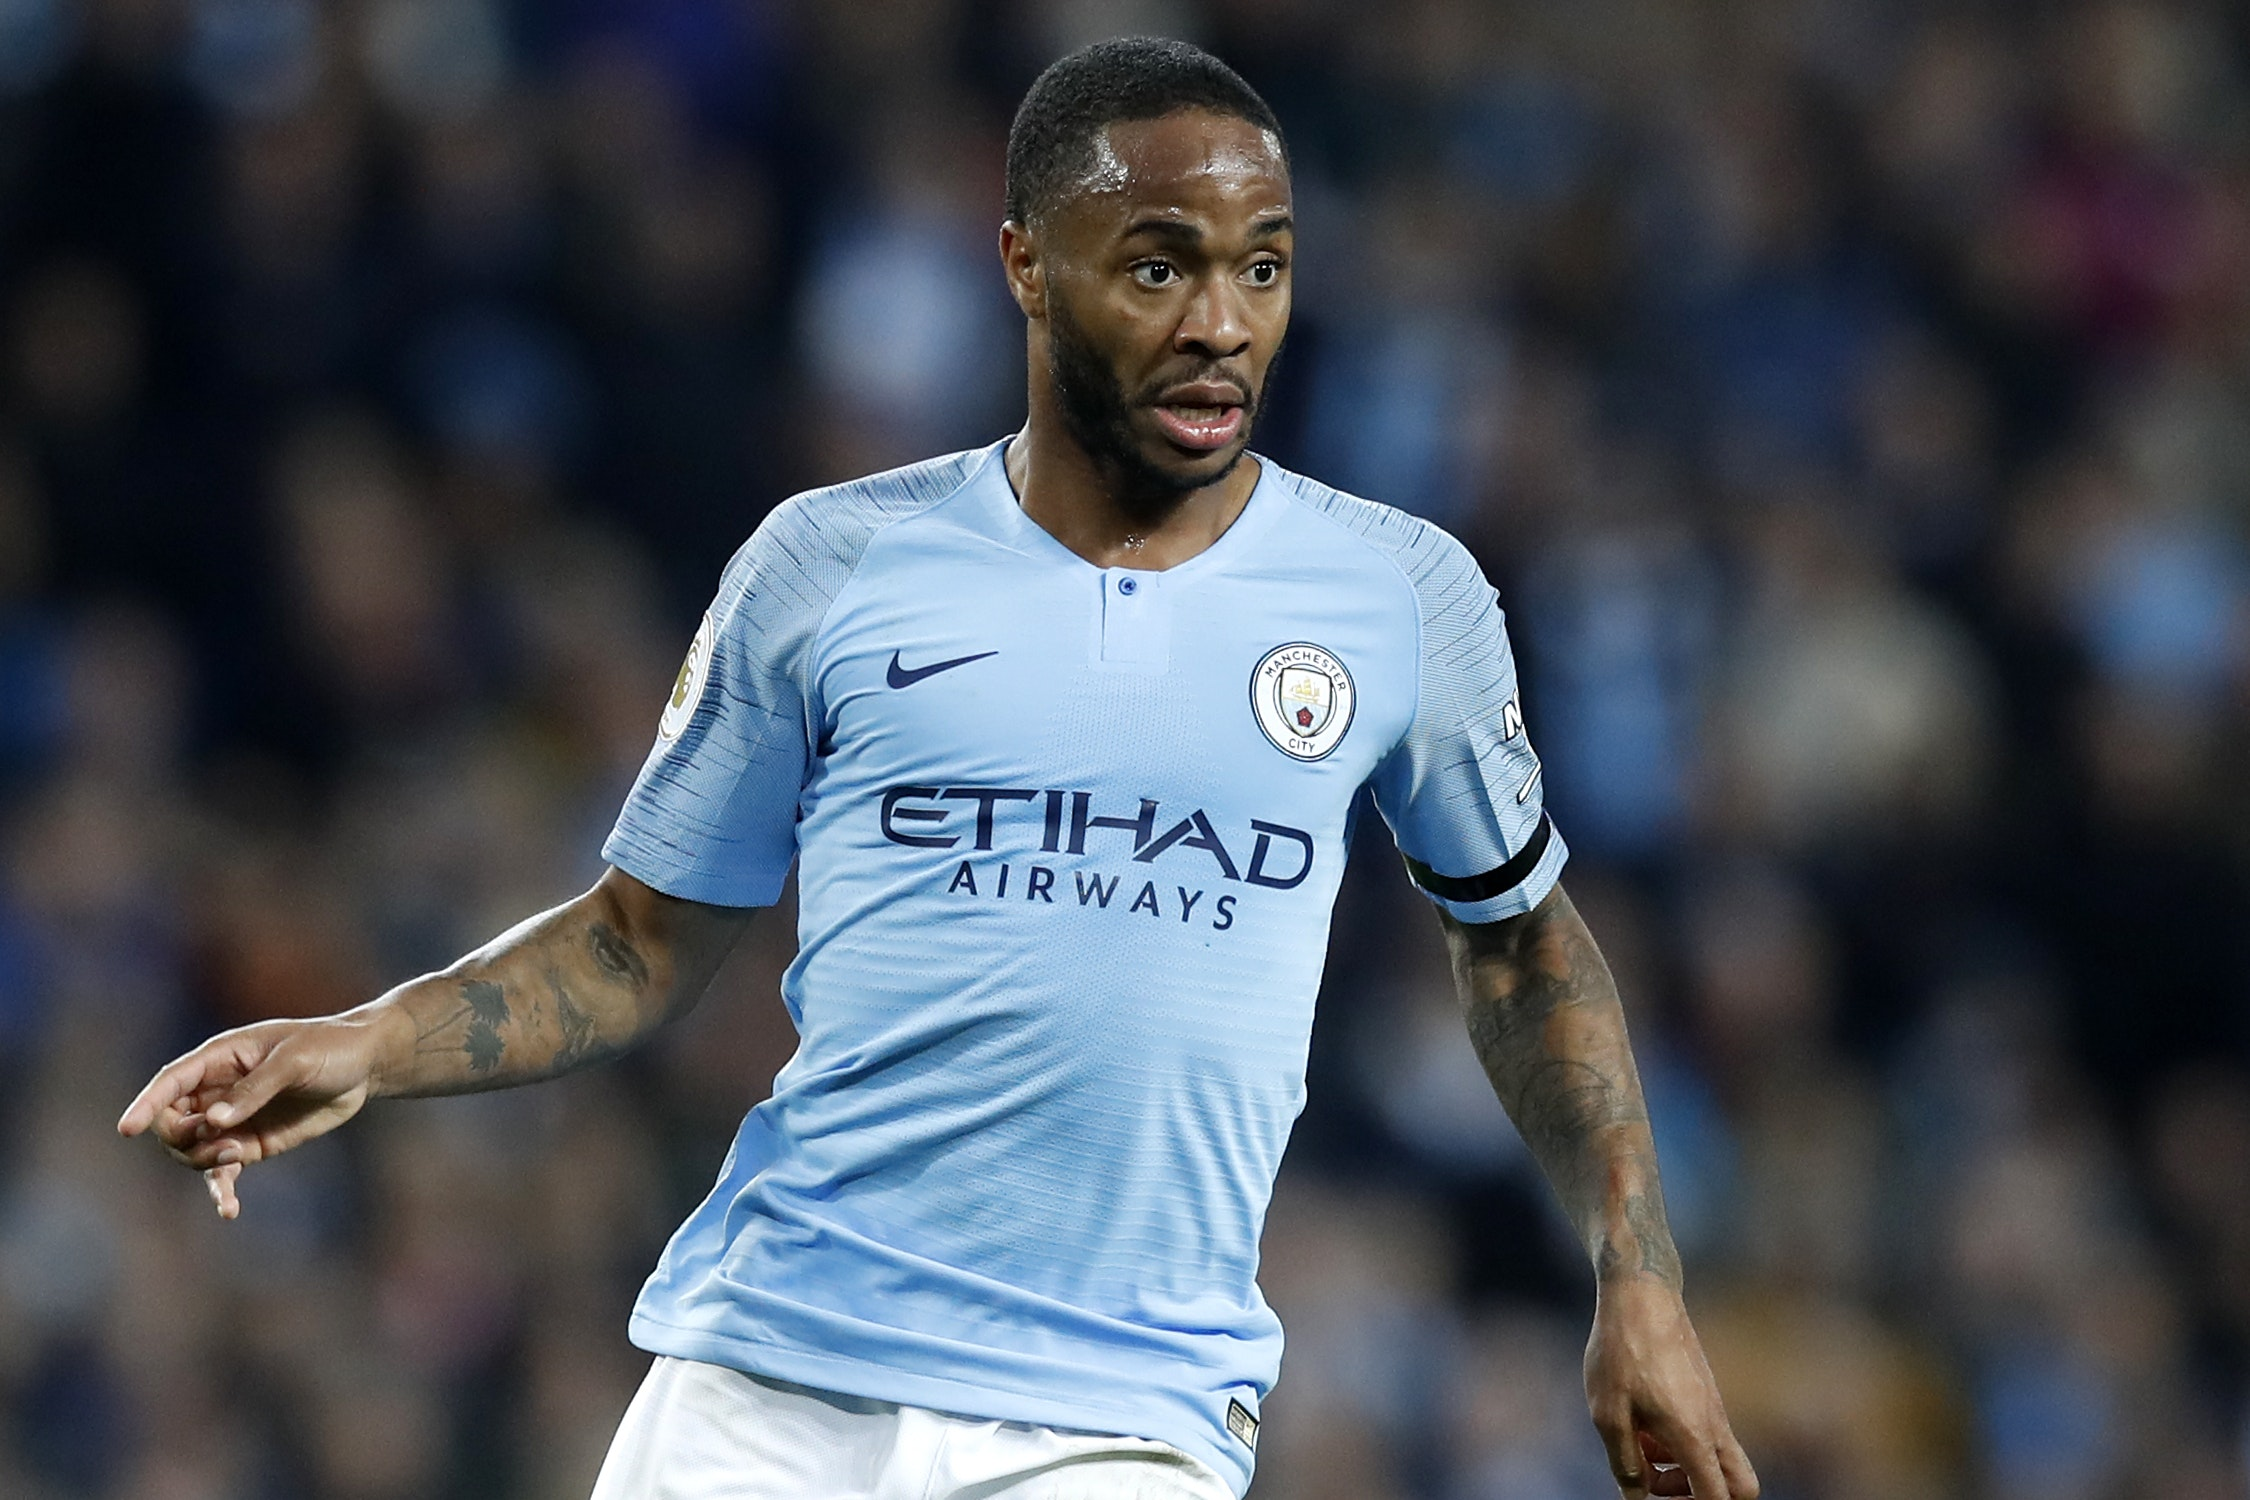 Man City forward Sterling named Premier League player of the month